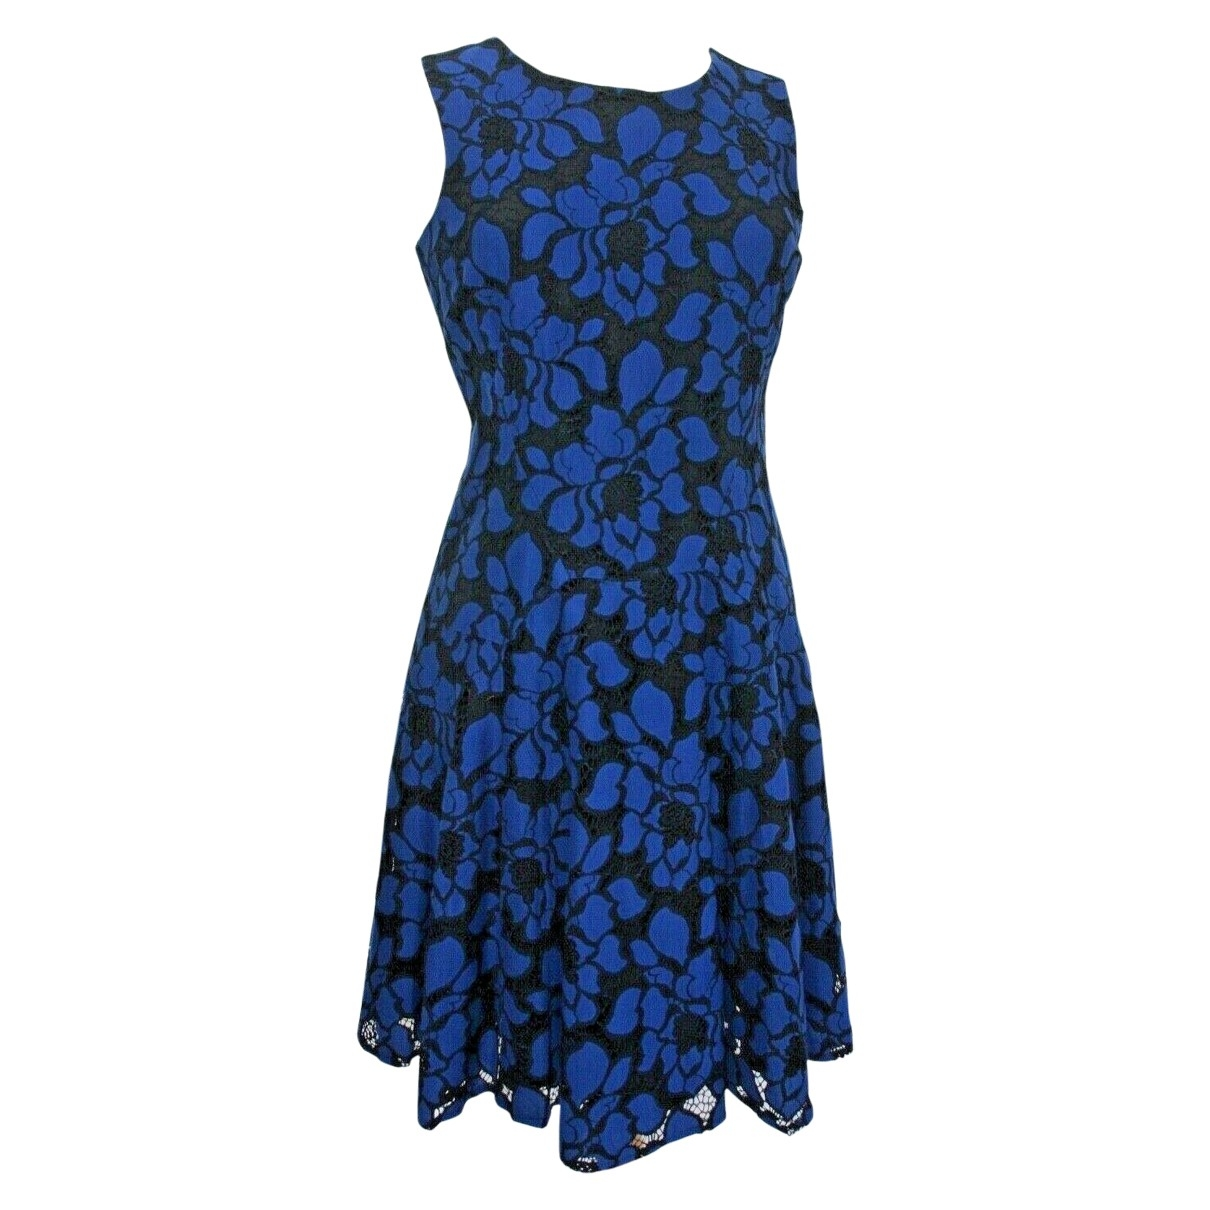 Tommy Hilfiger \N Blue Lace dress for Women 6 US